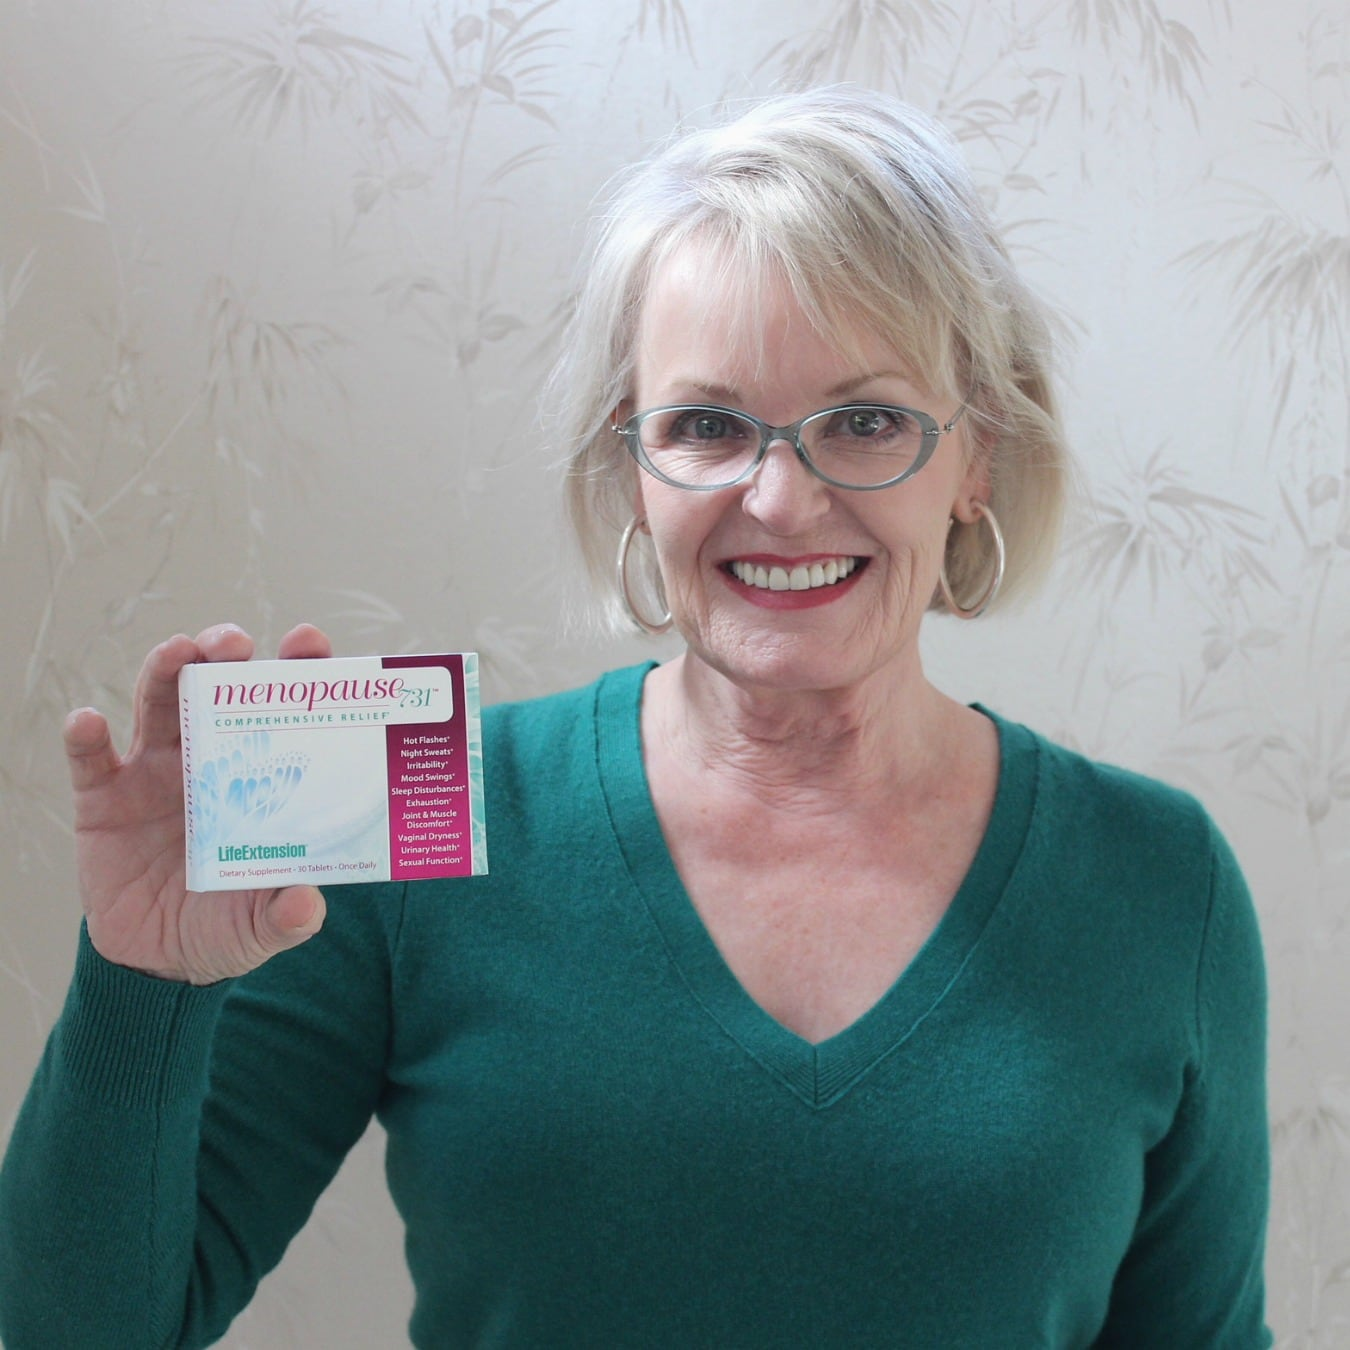 Jennifer Connolly of A Well Styled Life trying Menopause 731 supplement